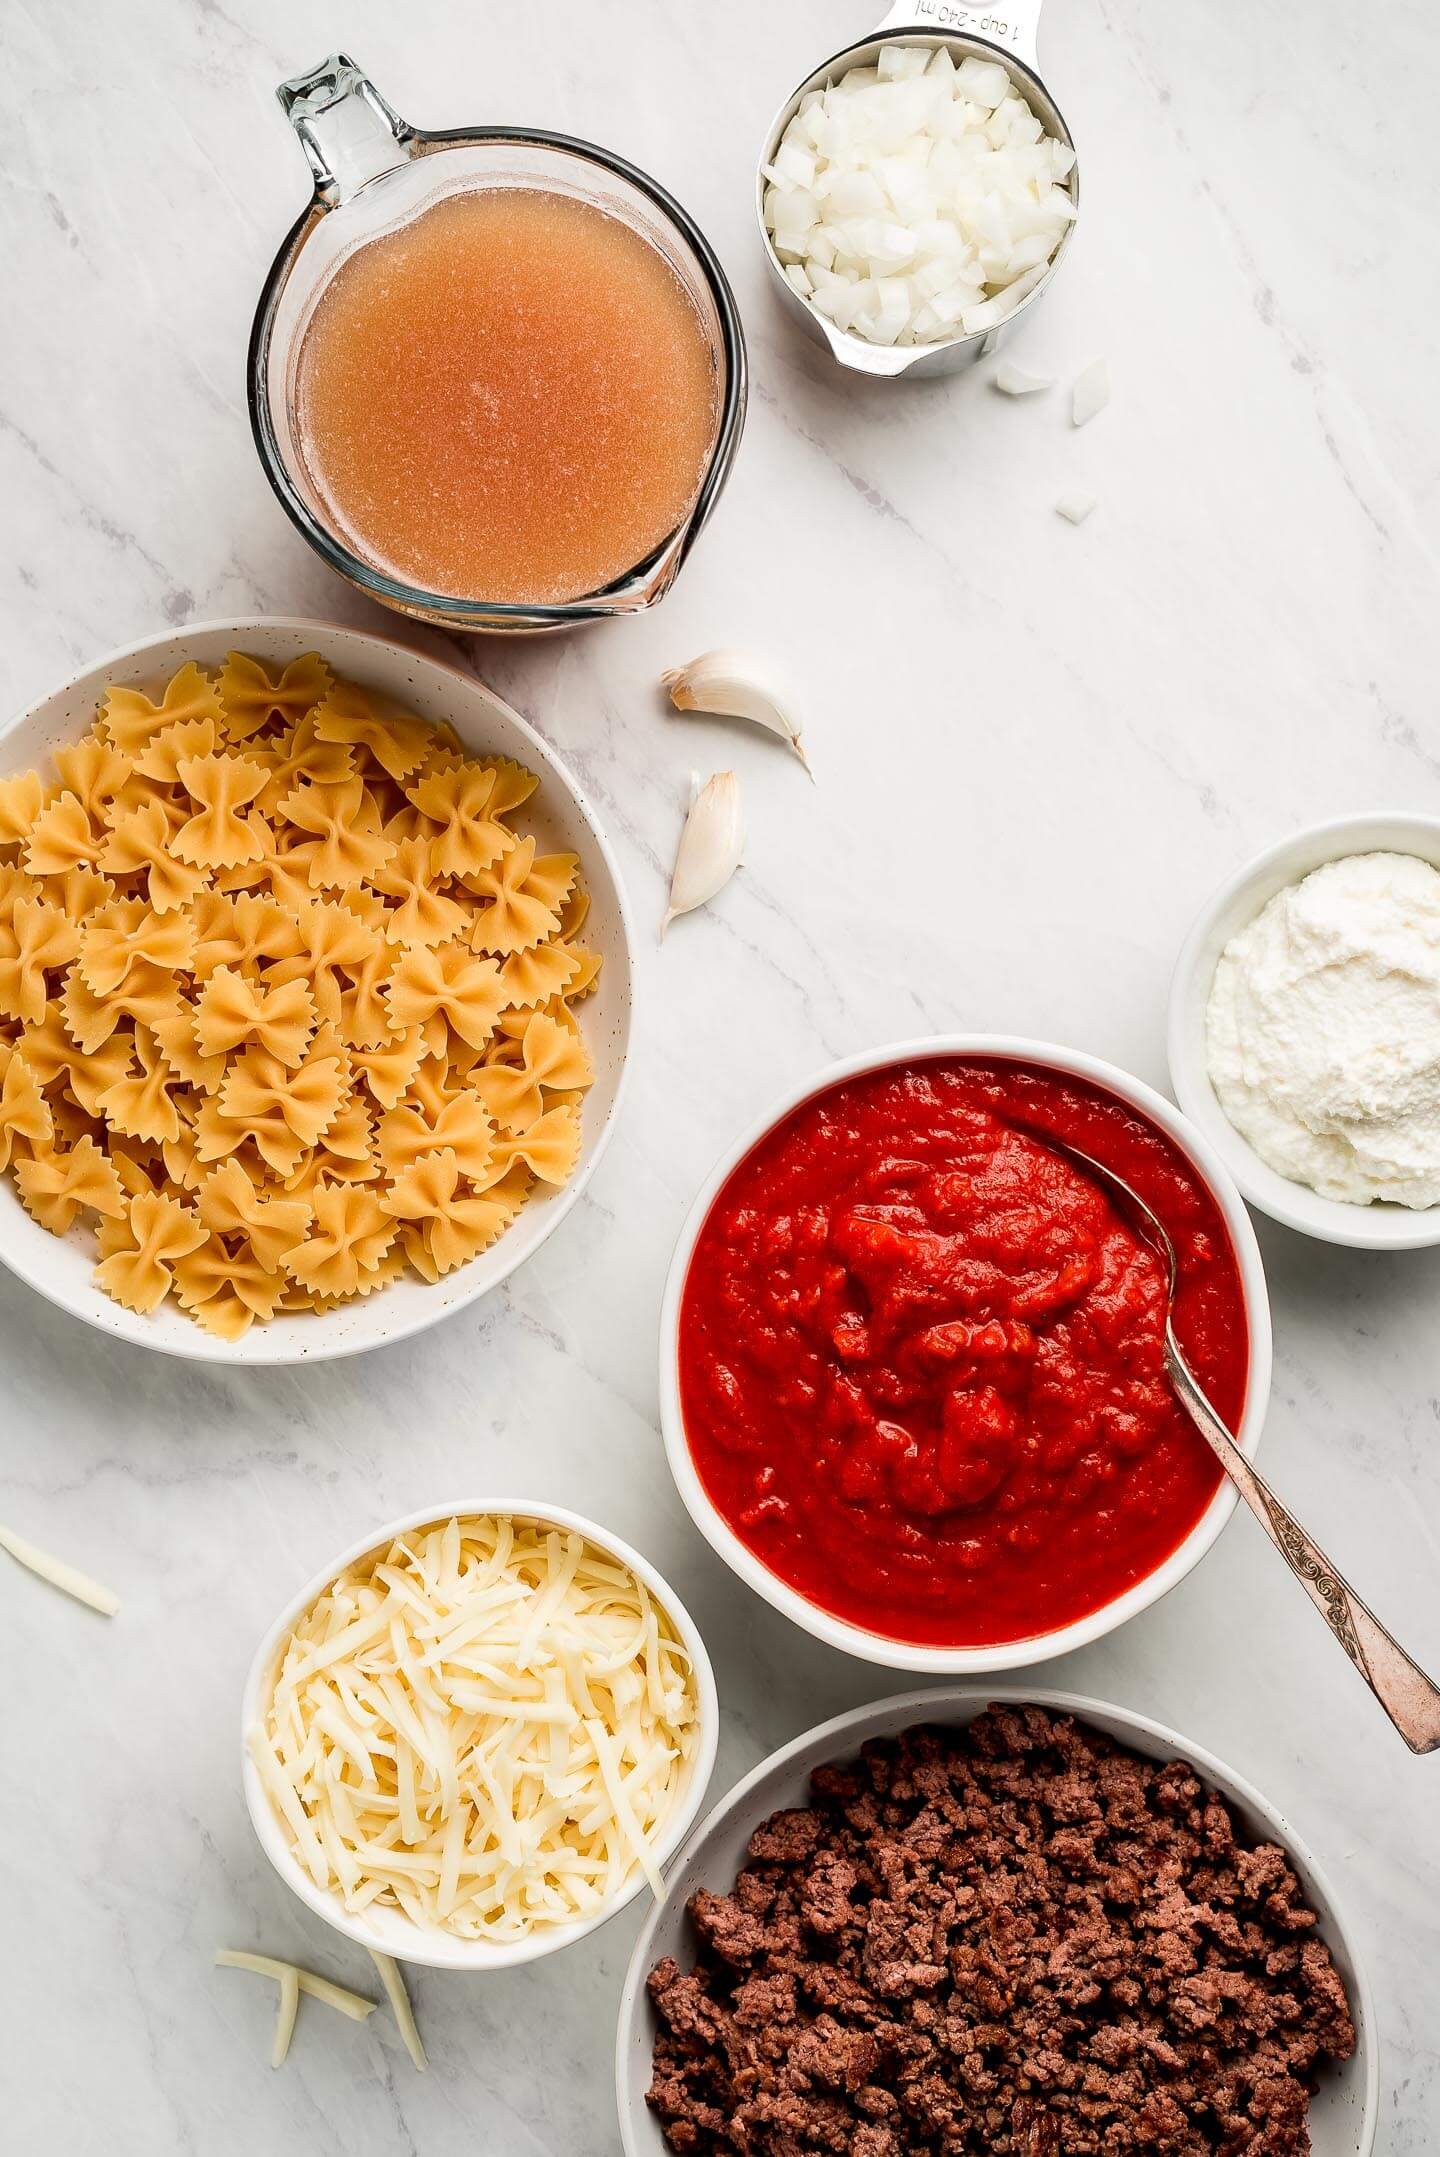 Ingredients on a marble surface in bowls-noodles, marinara sauce, ground beef, shredded cheese, broth, ricotta, onions.